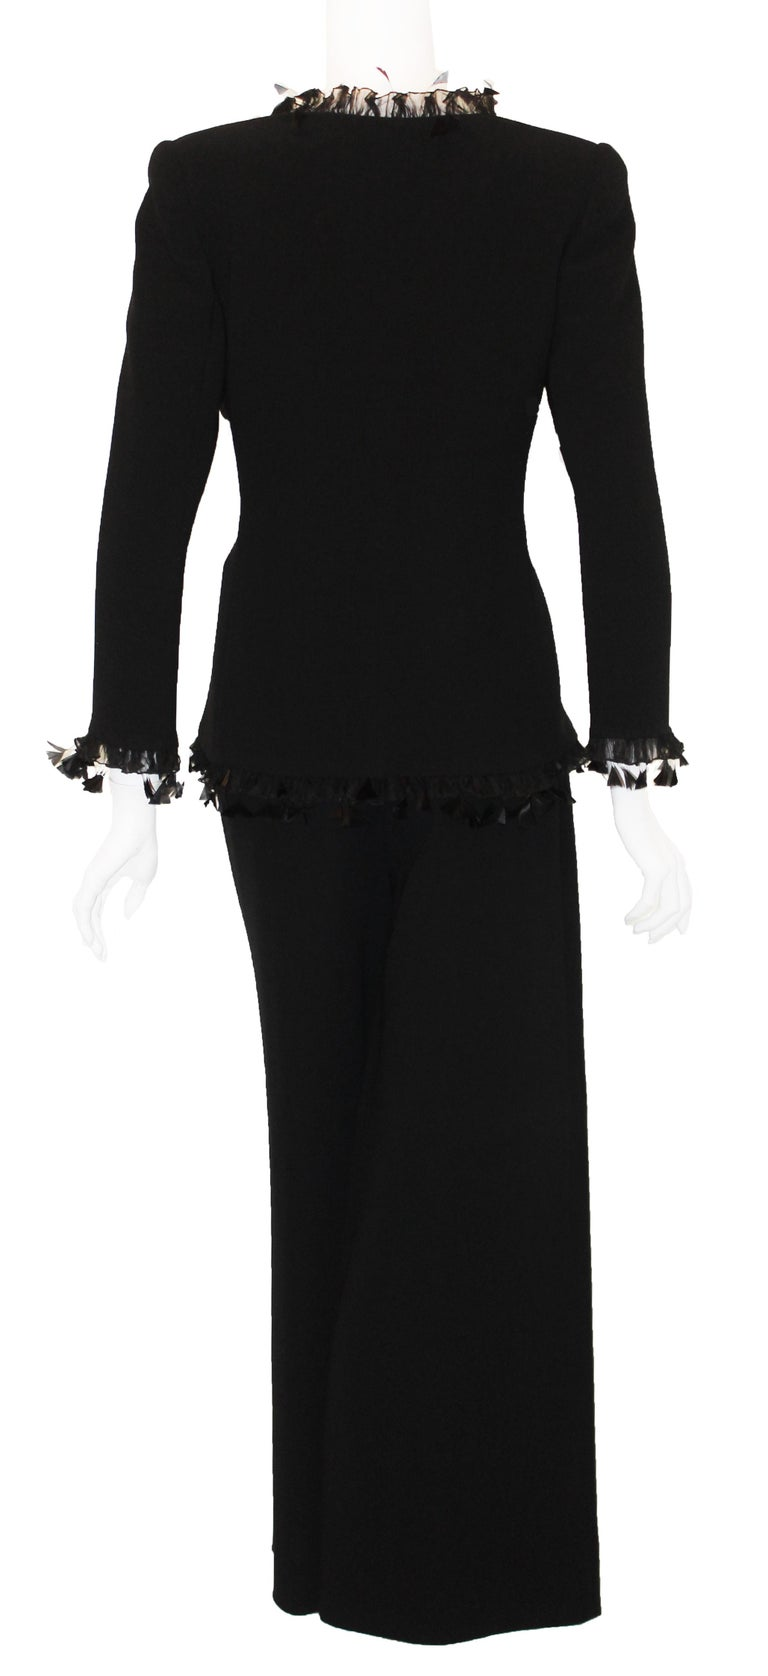 d738eca6c2b5 Valentino Black Wool Blend Palazzo Pant Suit In Excellent Condition For  Sale In Palm Beach